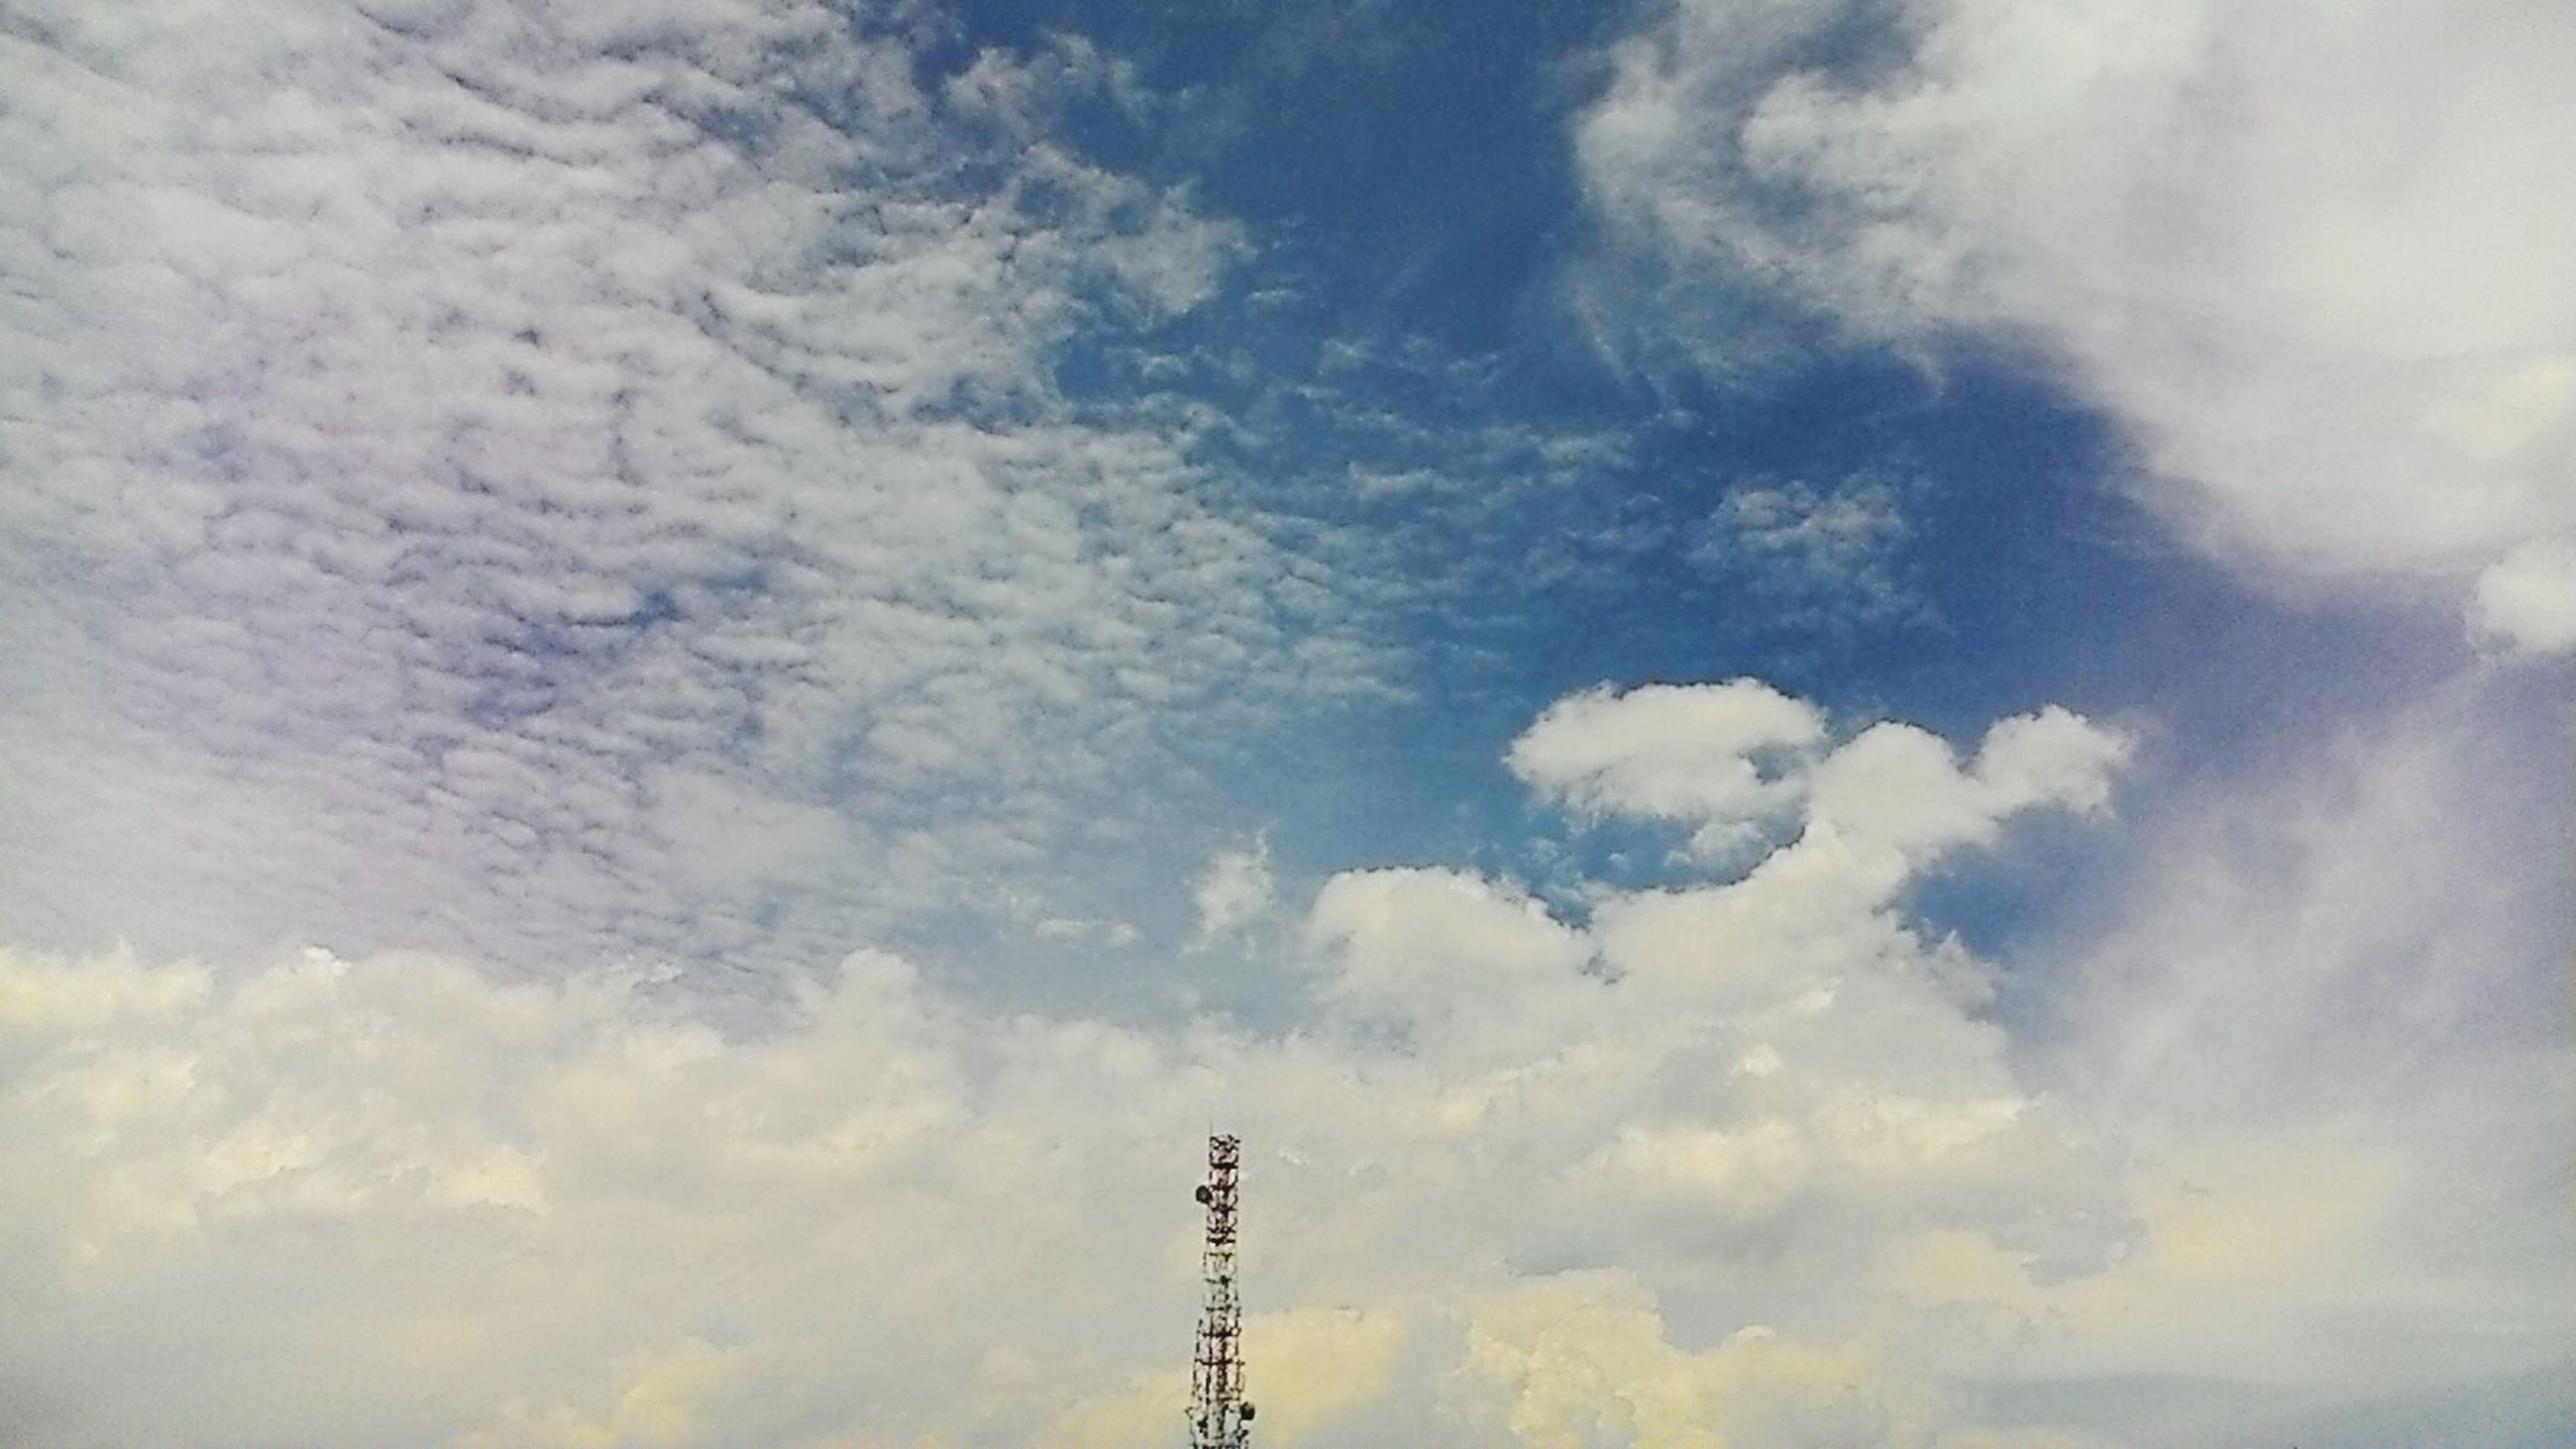 low angle view, sky, cloud - sky, cloudy, cloud, technology, nature, weather, communication, overcast, outdoors, no people, tranquility, electricity pylon, connection, day, beauty in nature, power line, silhouette, electricity